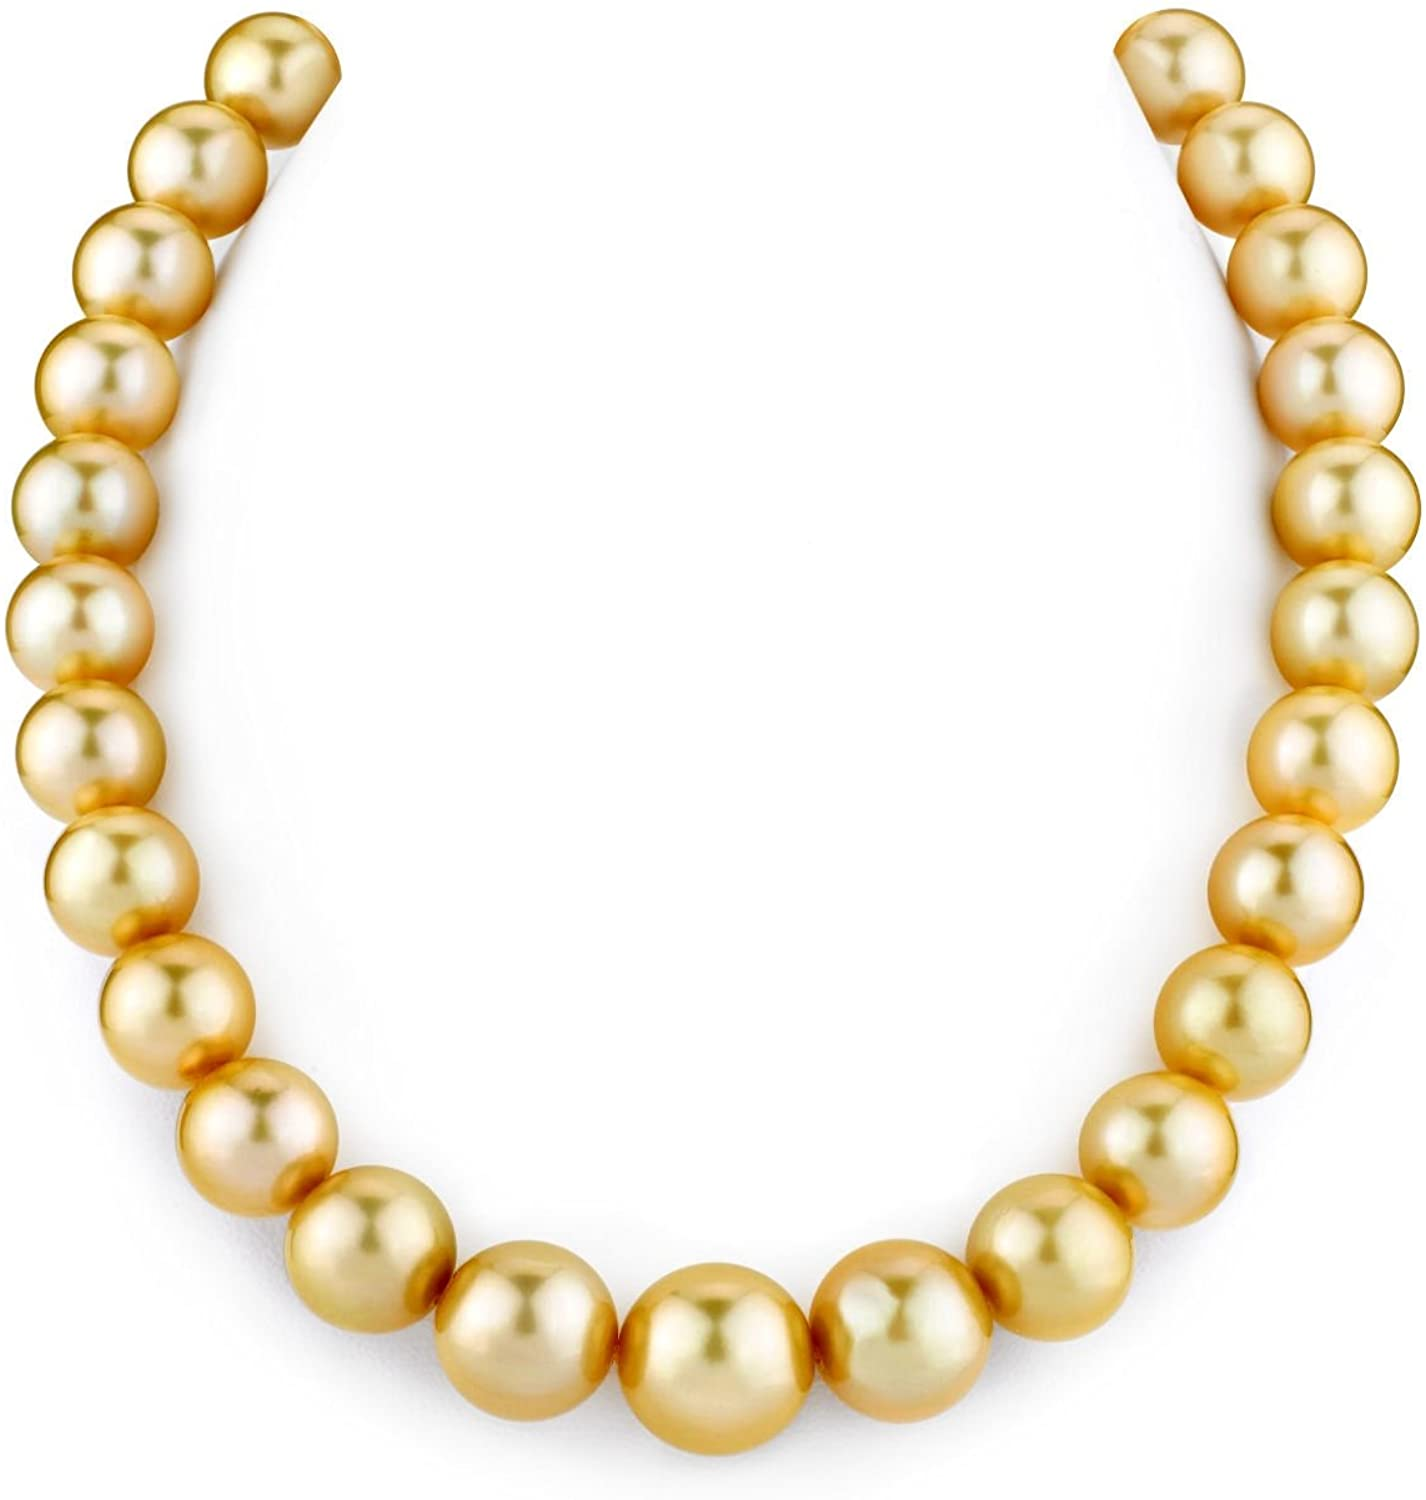 THE PEARL SOURCE 14K Gold 12-14mm AAAA Quality Round Golden South Sea Cultured Pearl Necklace, 17